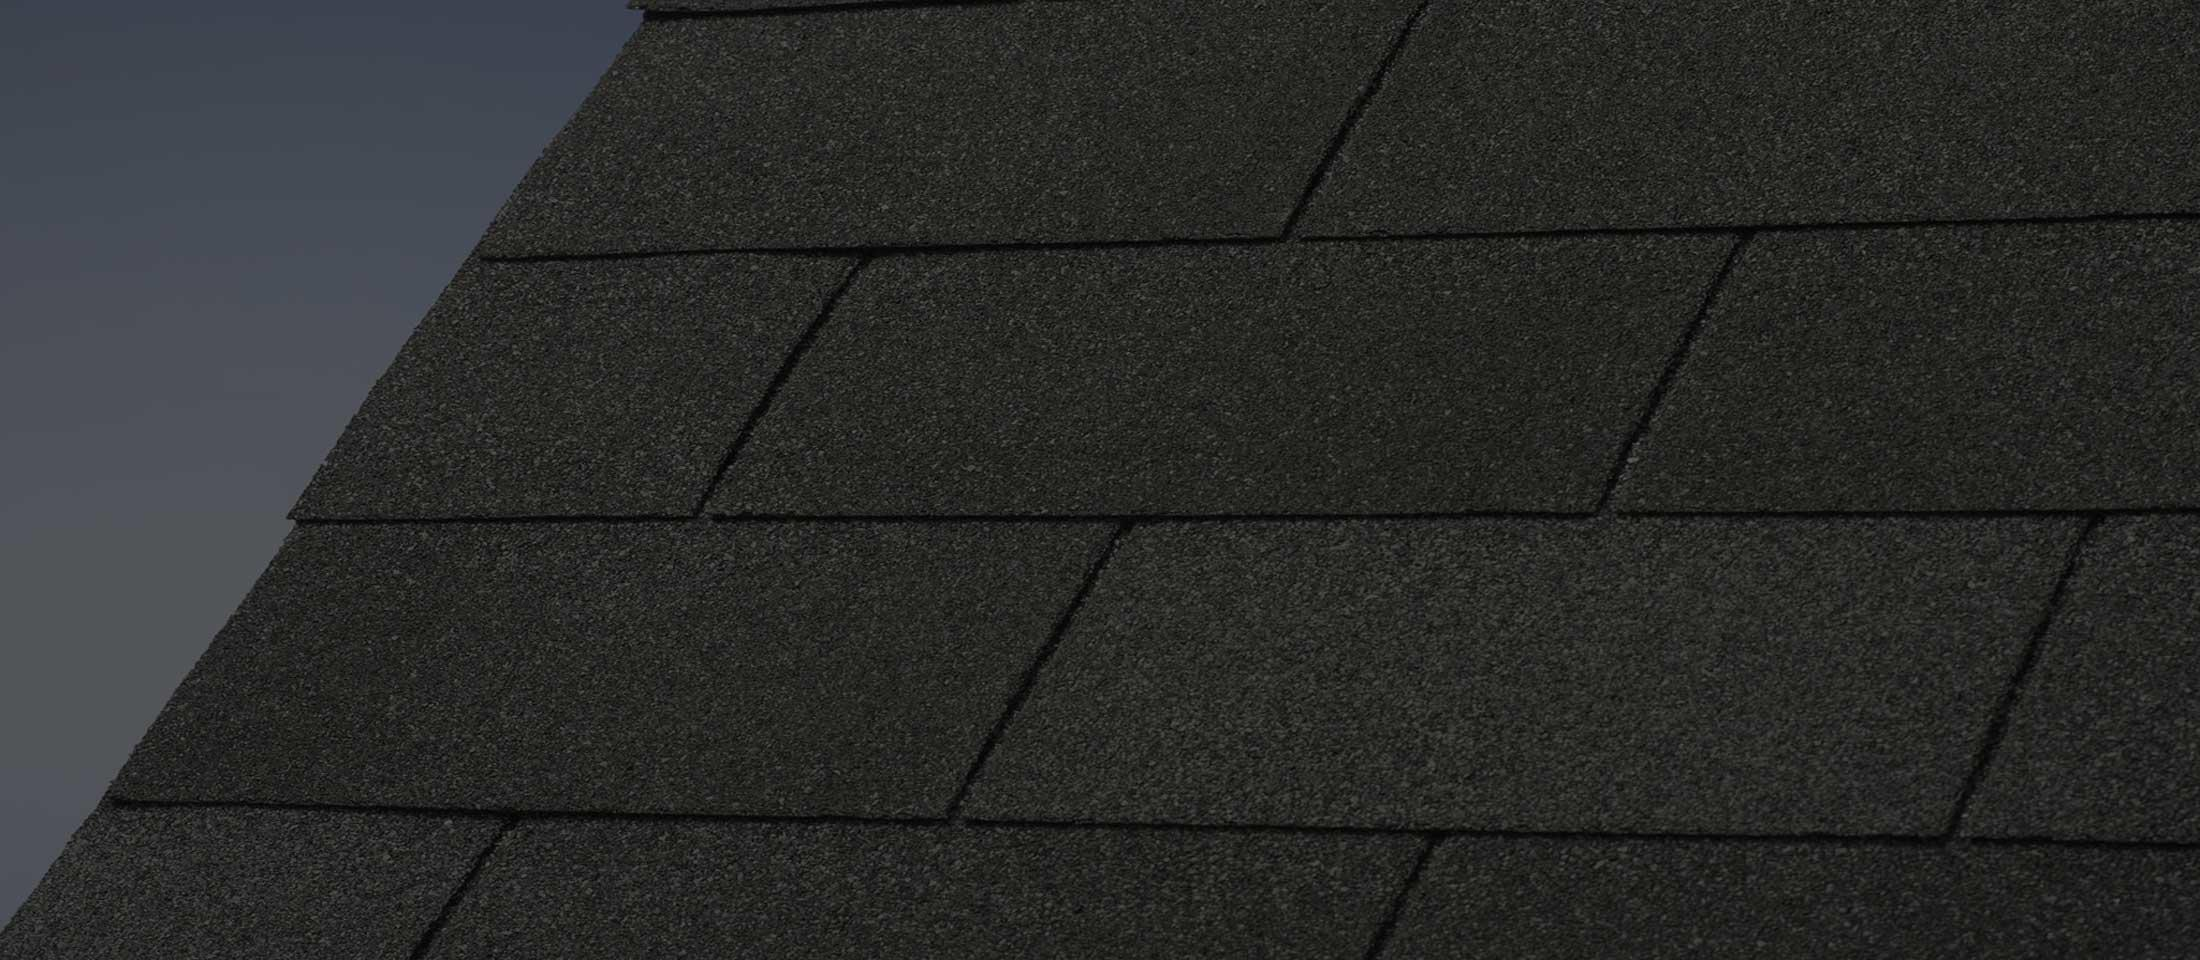 iko background roof design